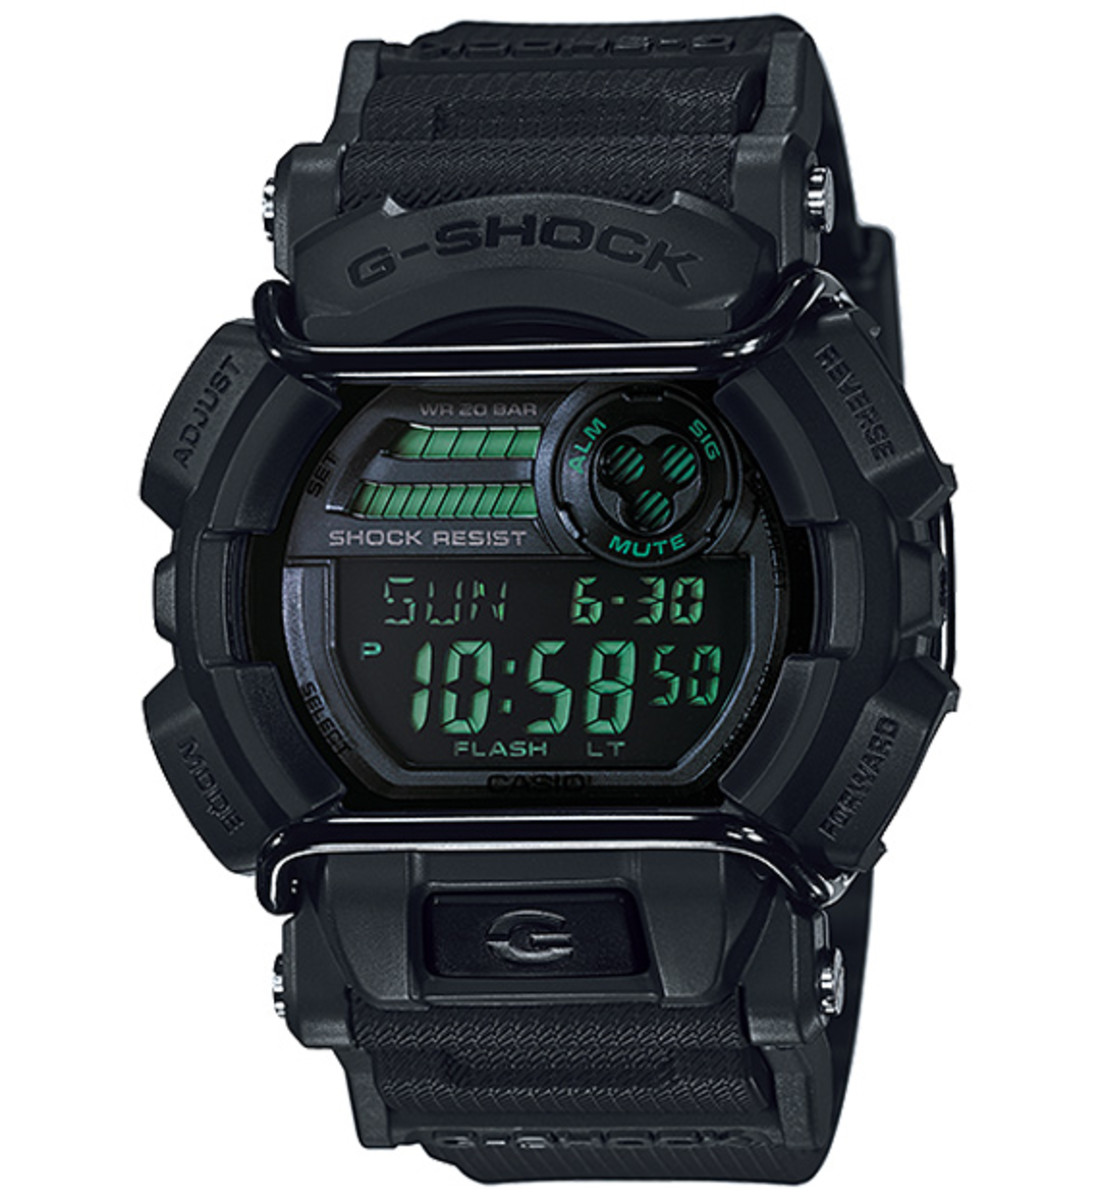 Casio G-Shock GD-400MB-1JF